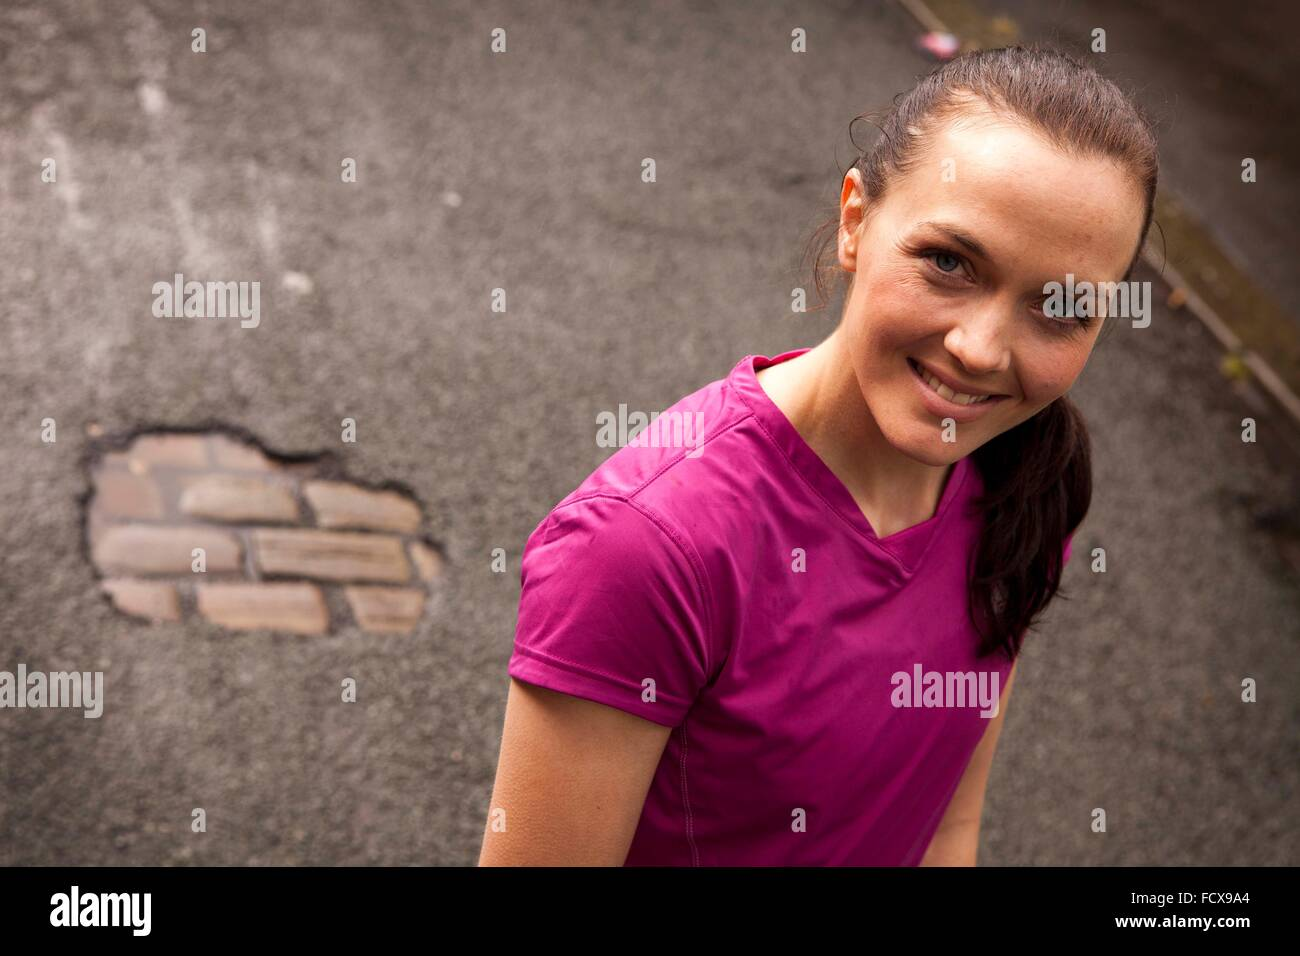 Olympic and World Champion track cyclist, Victoria Pendleton - Stock Image